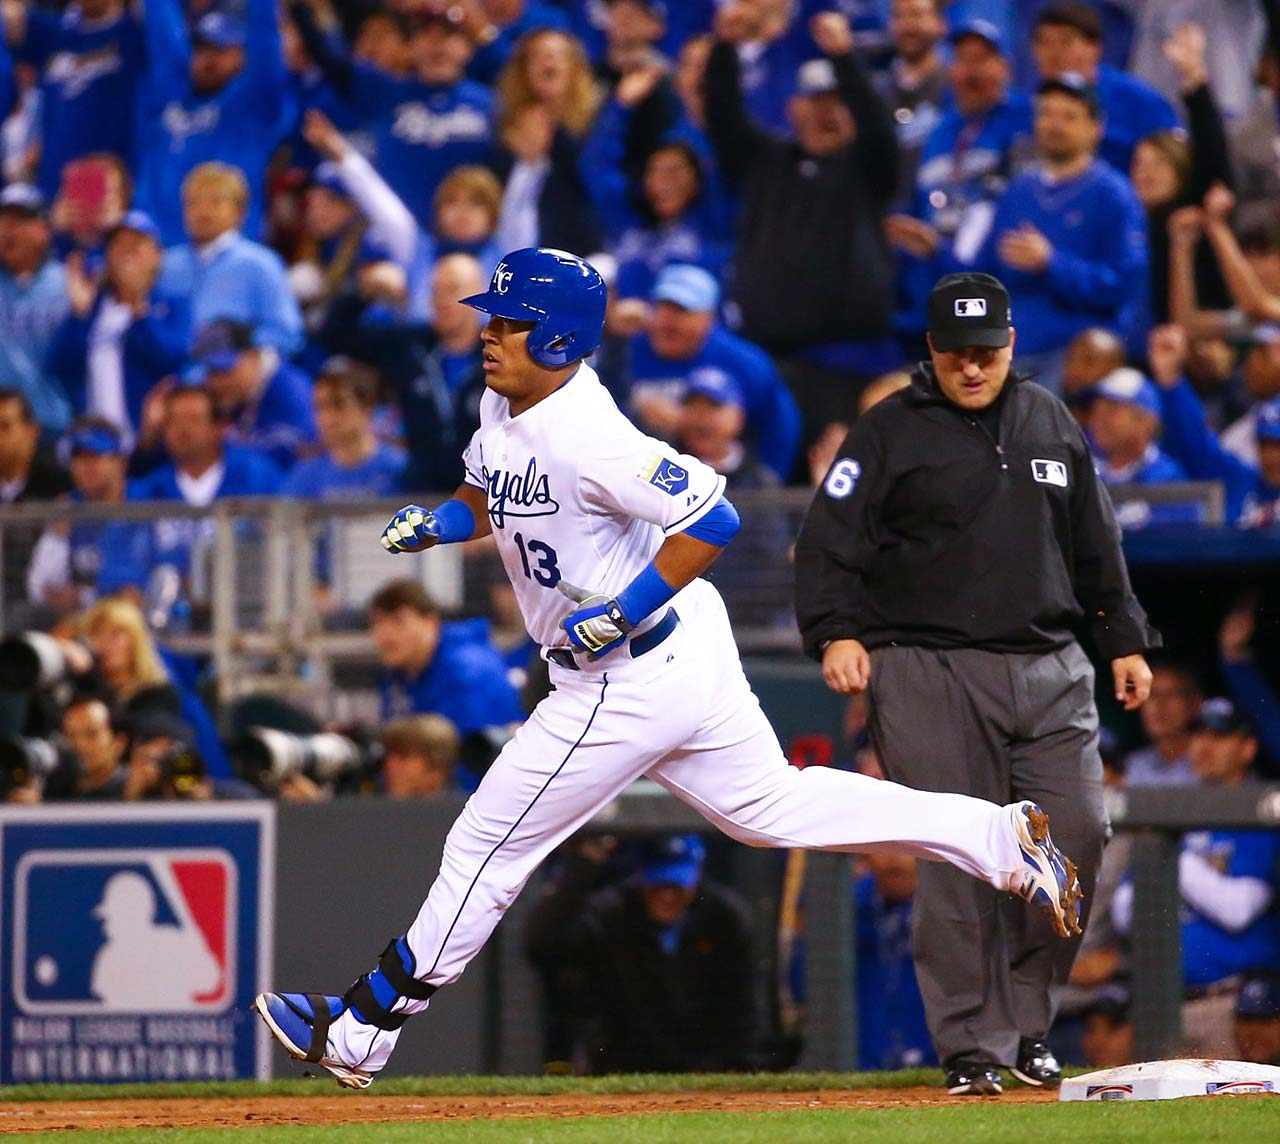 Salvador Perez rounds the bases after hitting a solo homer to put Kansas City on the scoreboard.